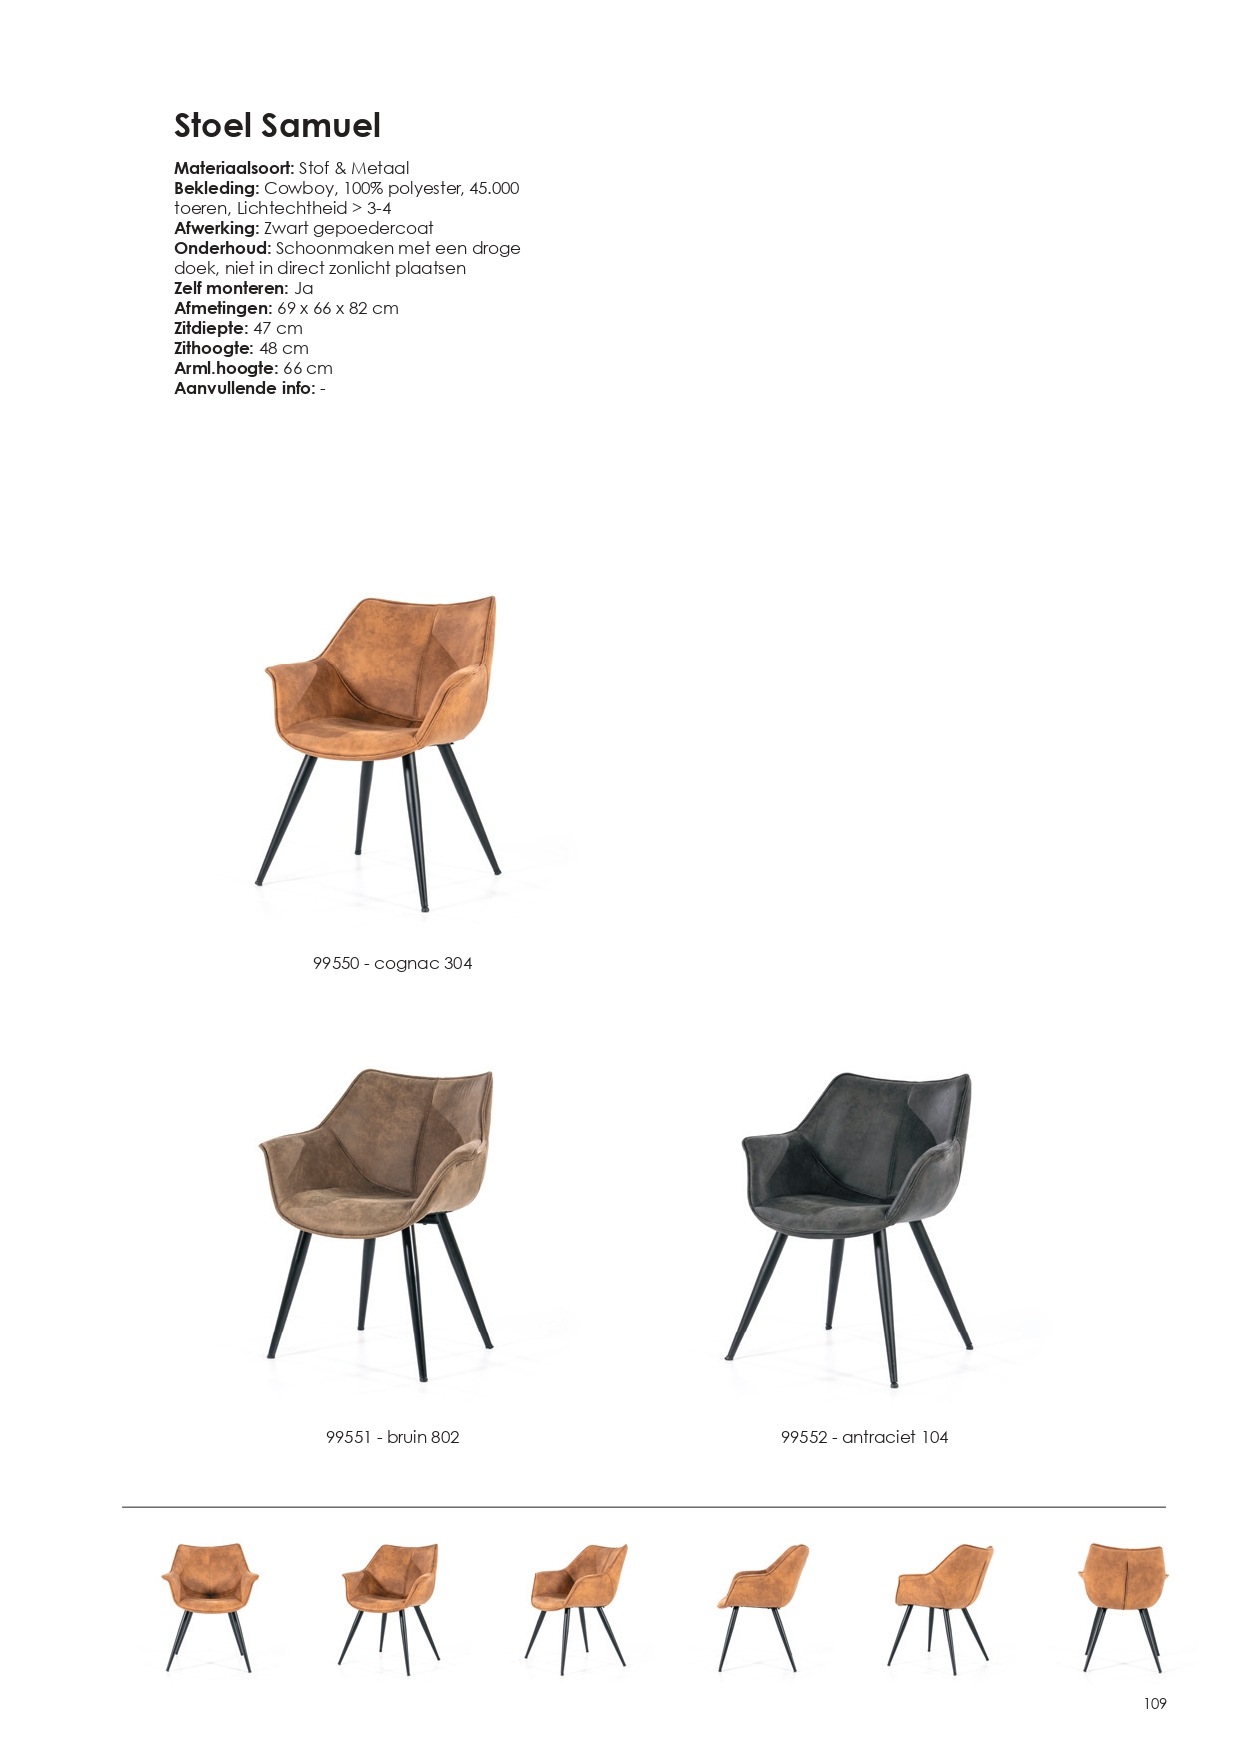 Catalogus SS21 NL_page-0109